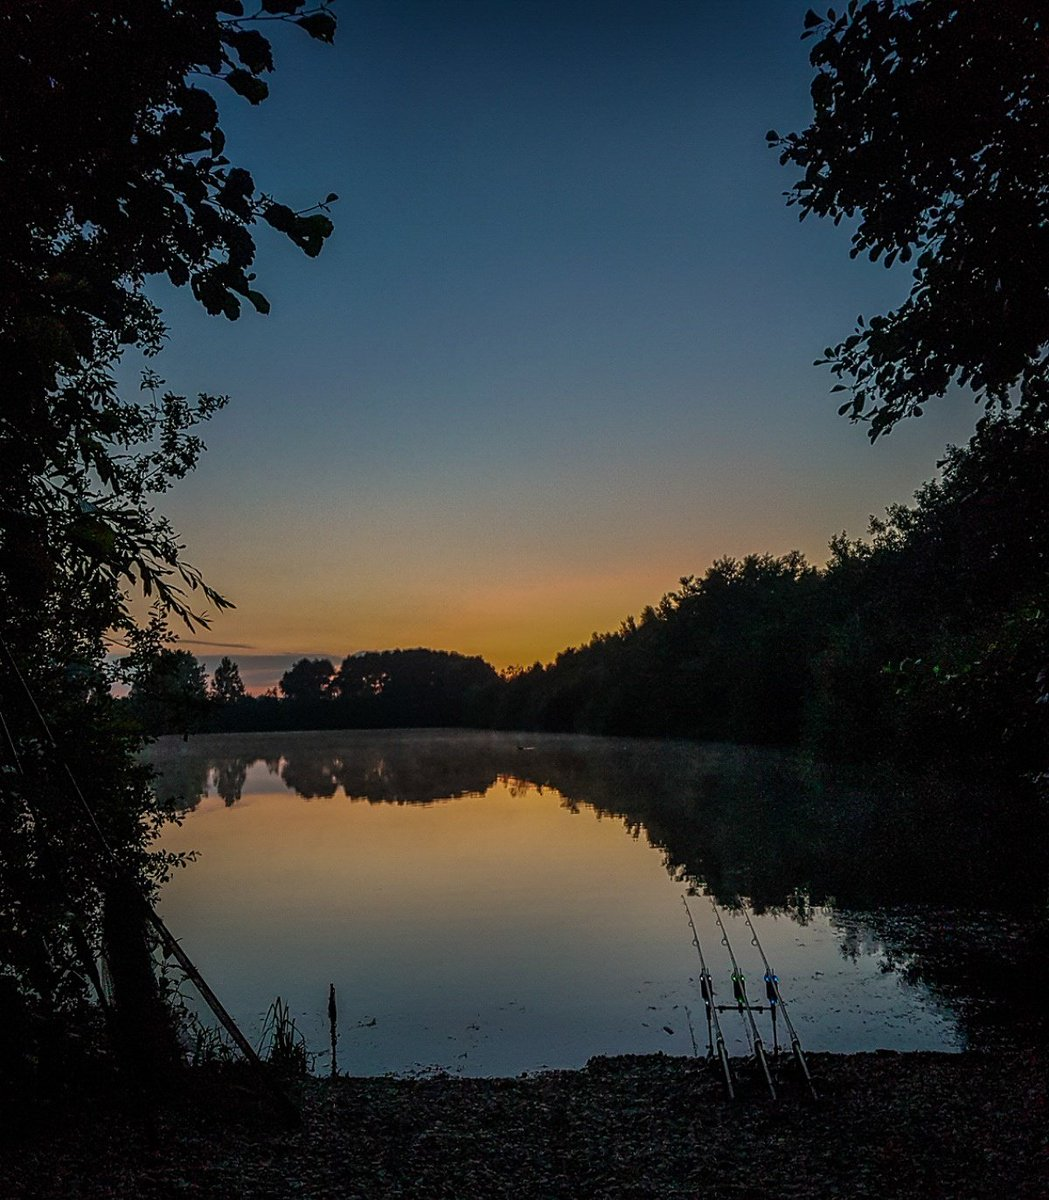 Got to love a sunrise @Castaway_PVA social at linear #carpfishing #sunrise #onthebank #DNABaits #DBP